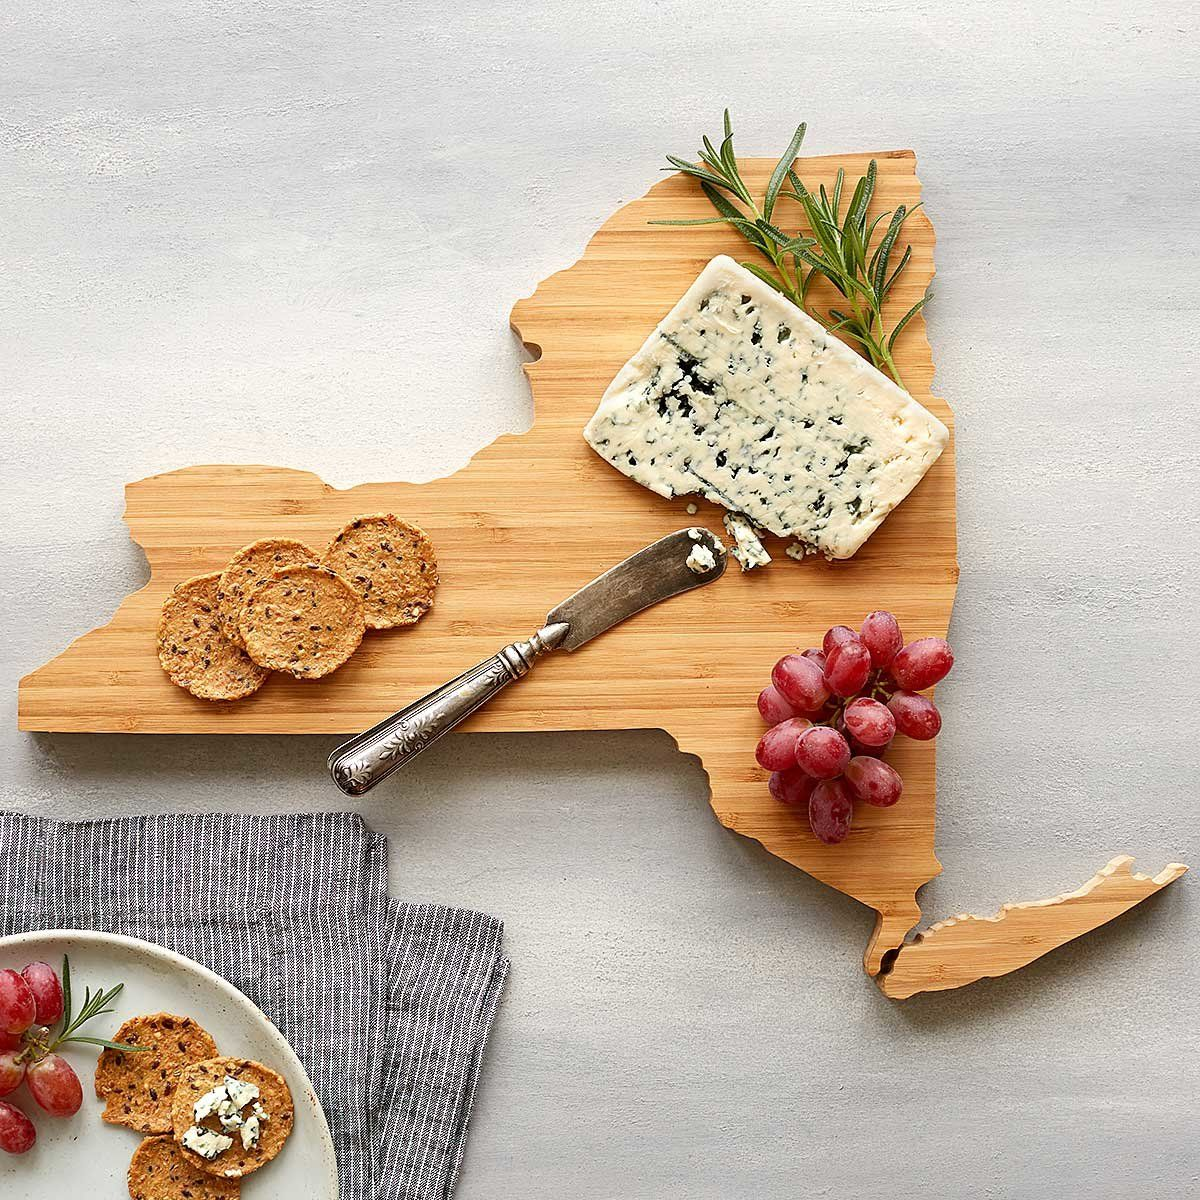 What To Buy For Housewarming Party State Cheese Boards